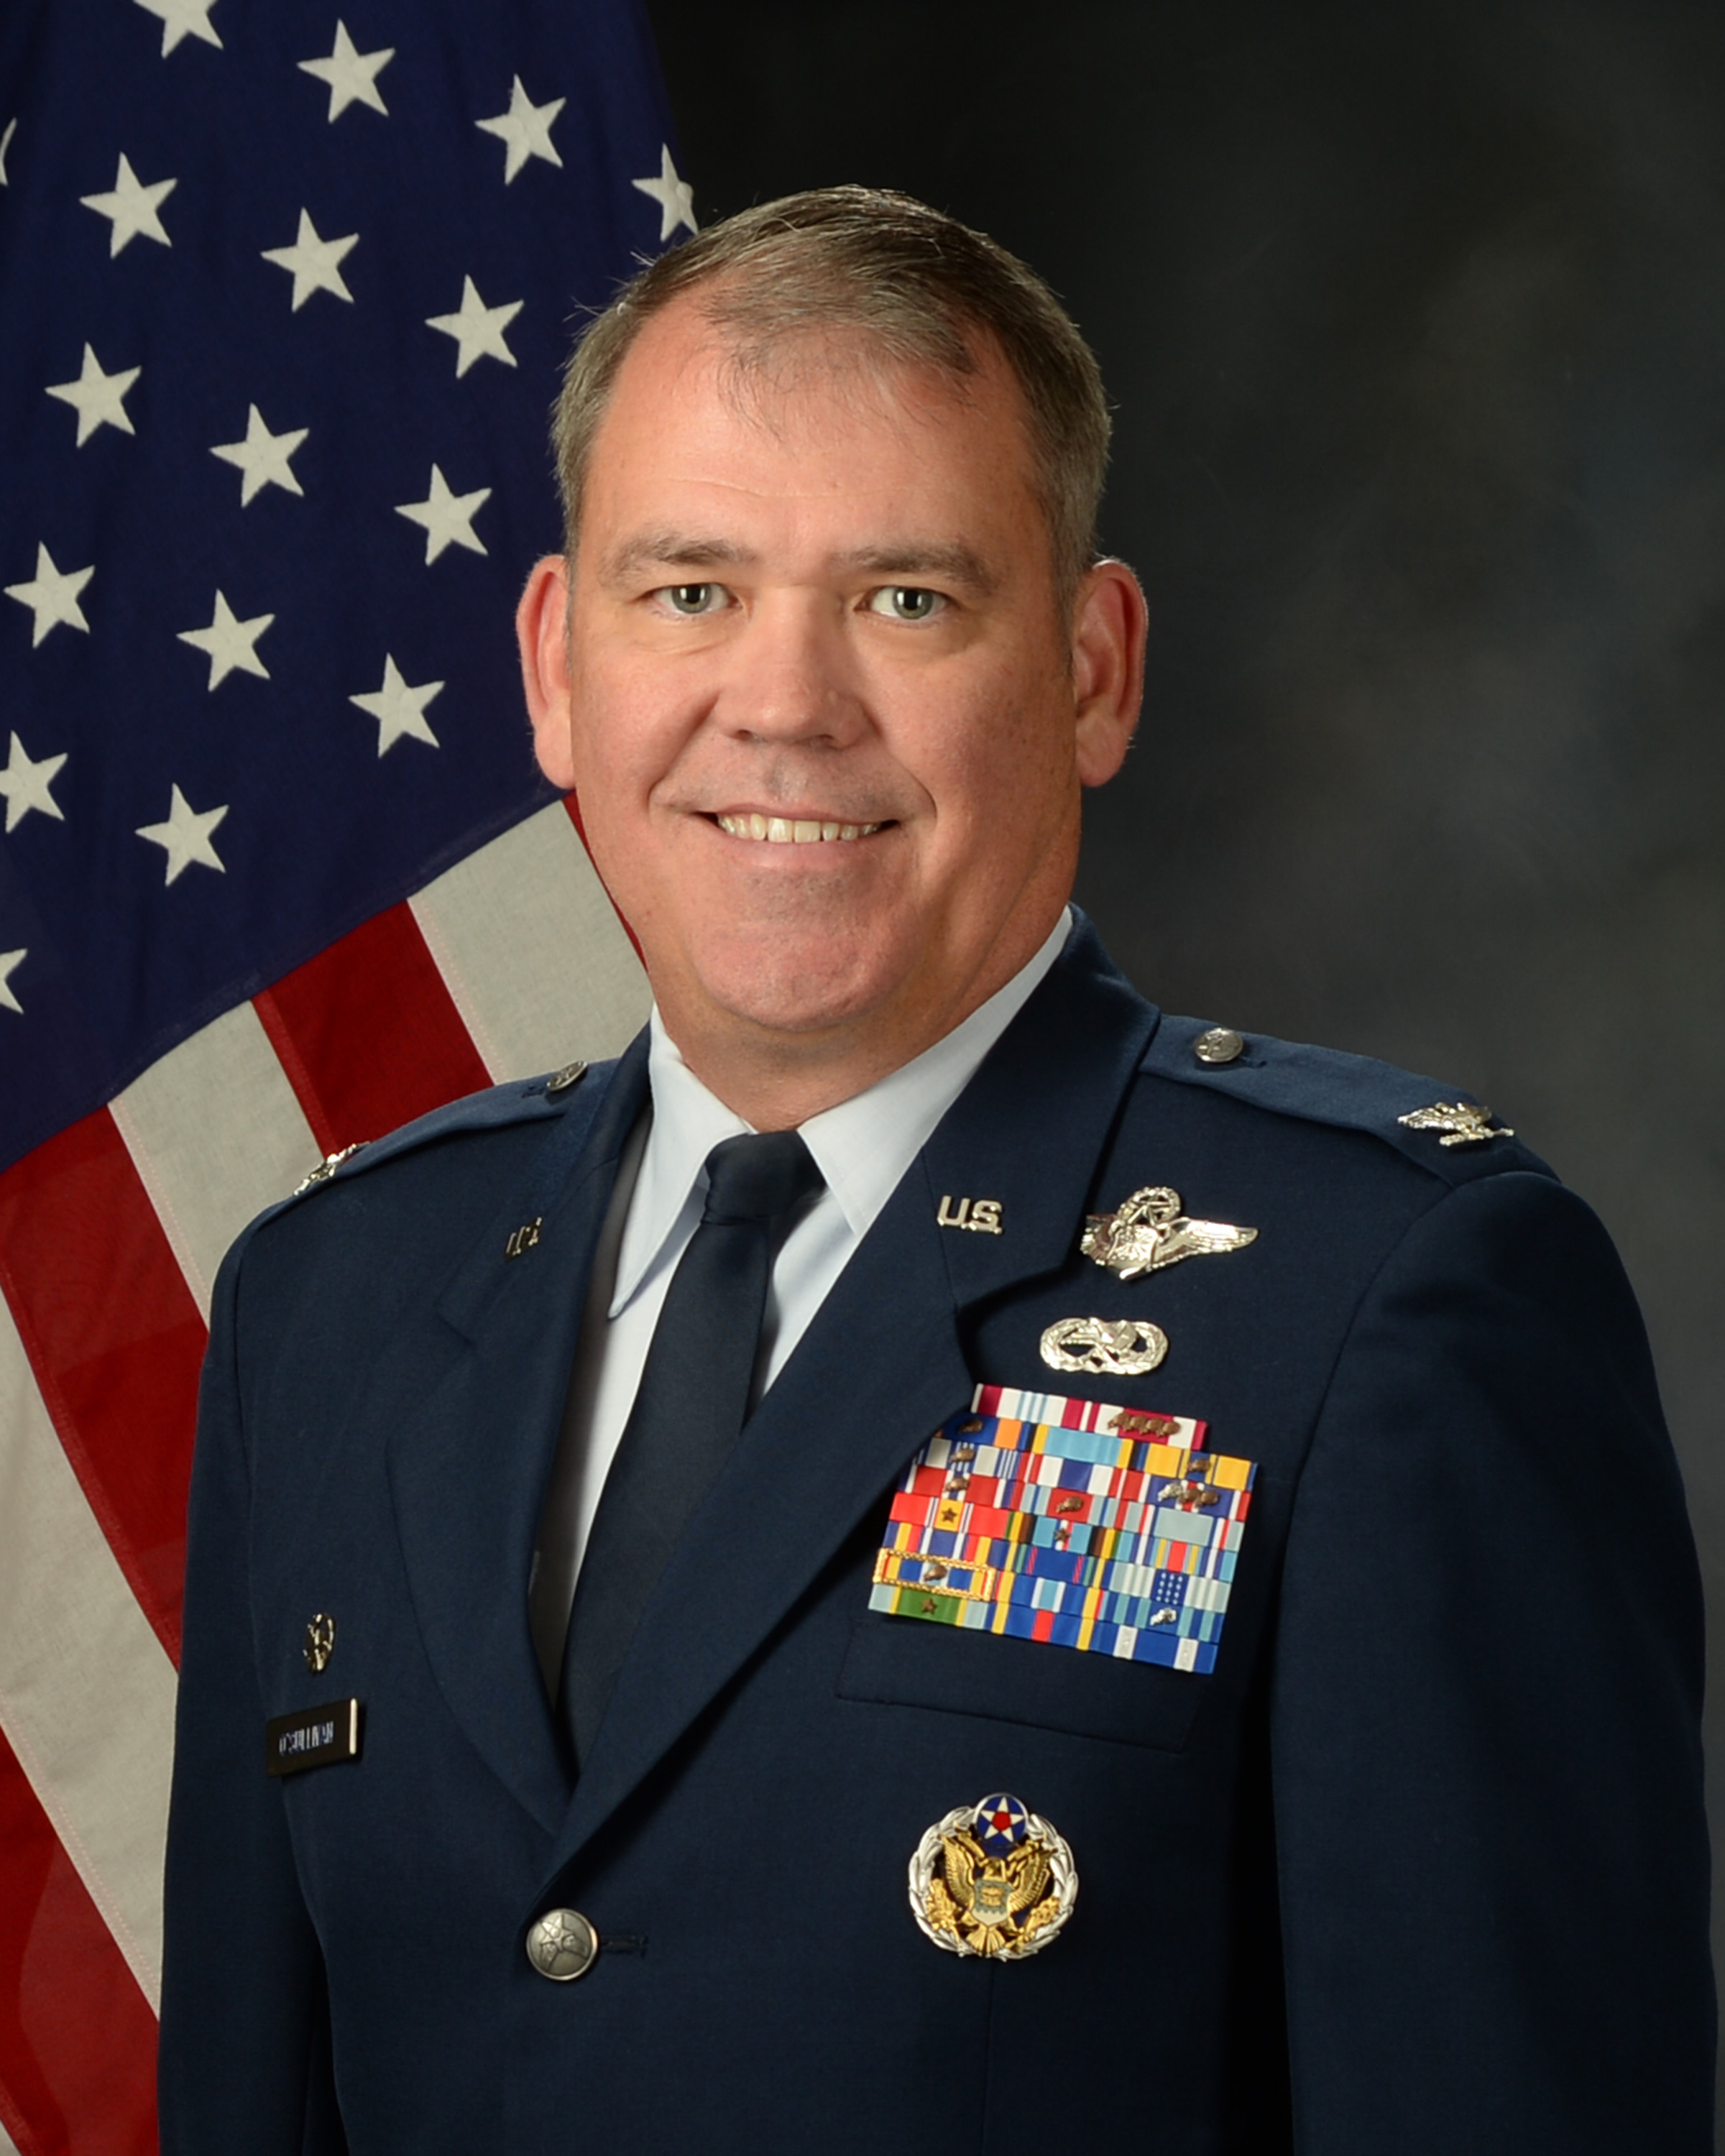 Colonel Patrick O'Sullivan official photo with American flag background